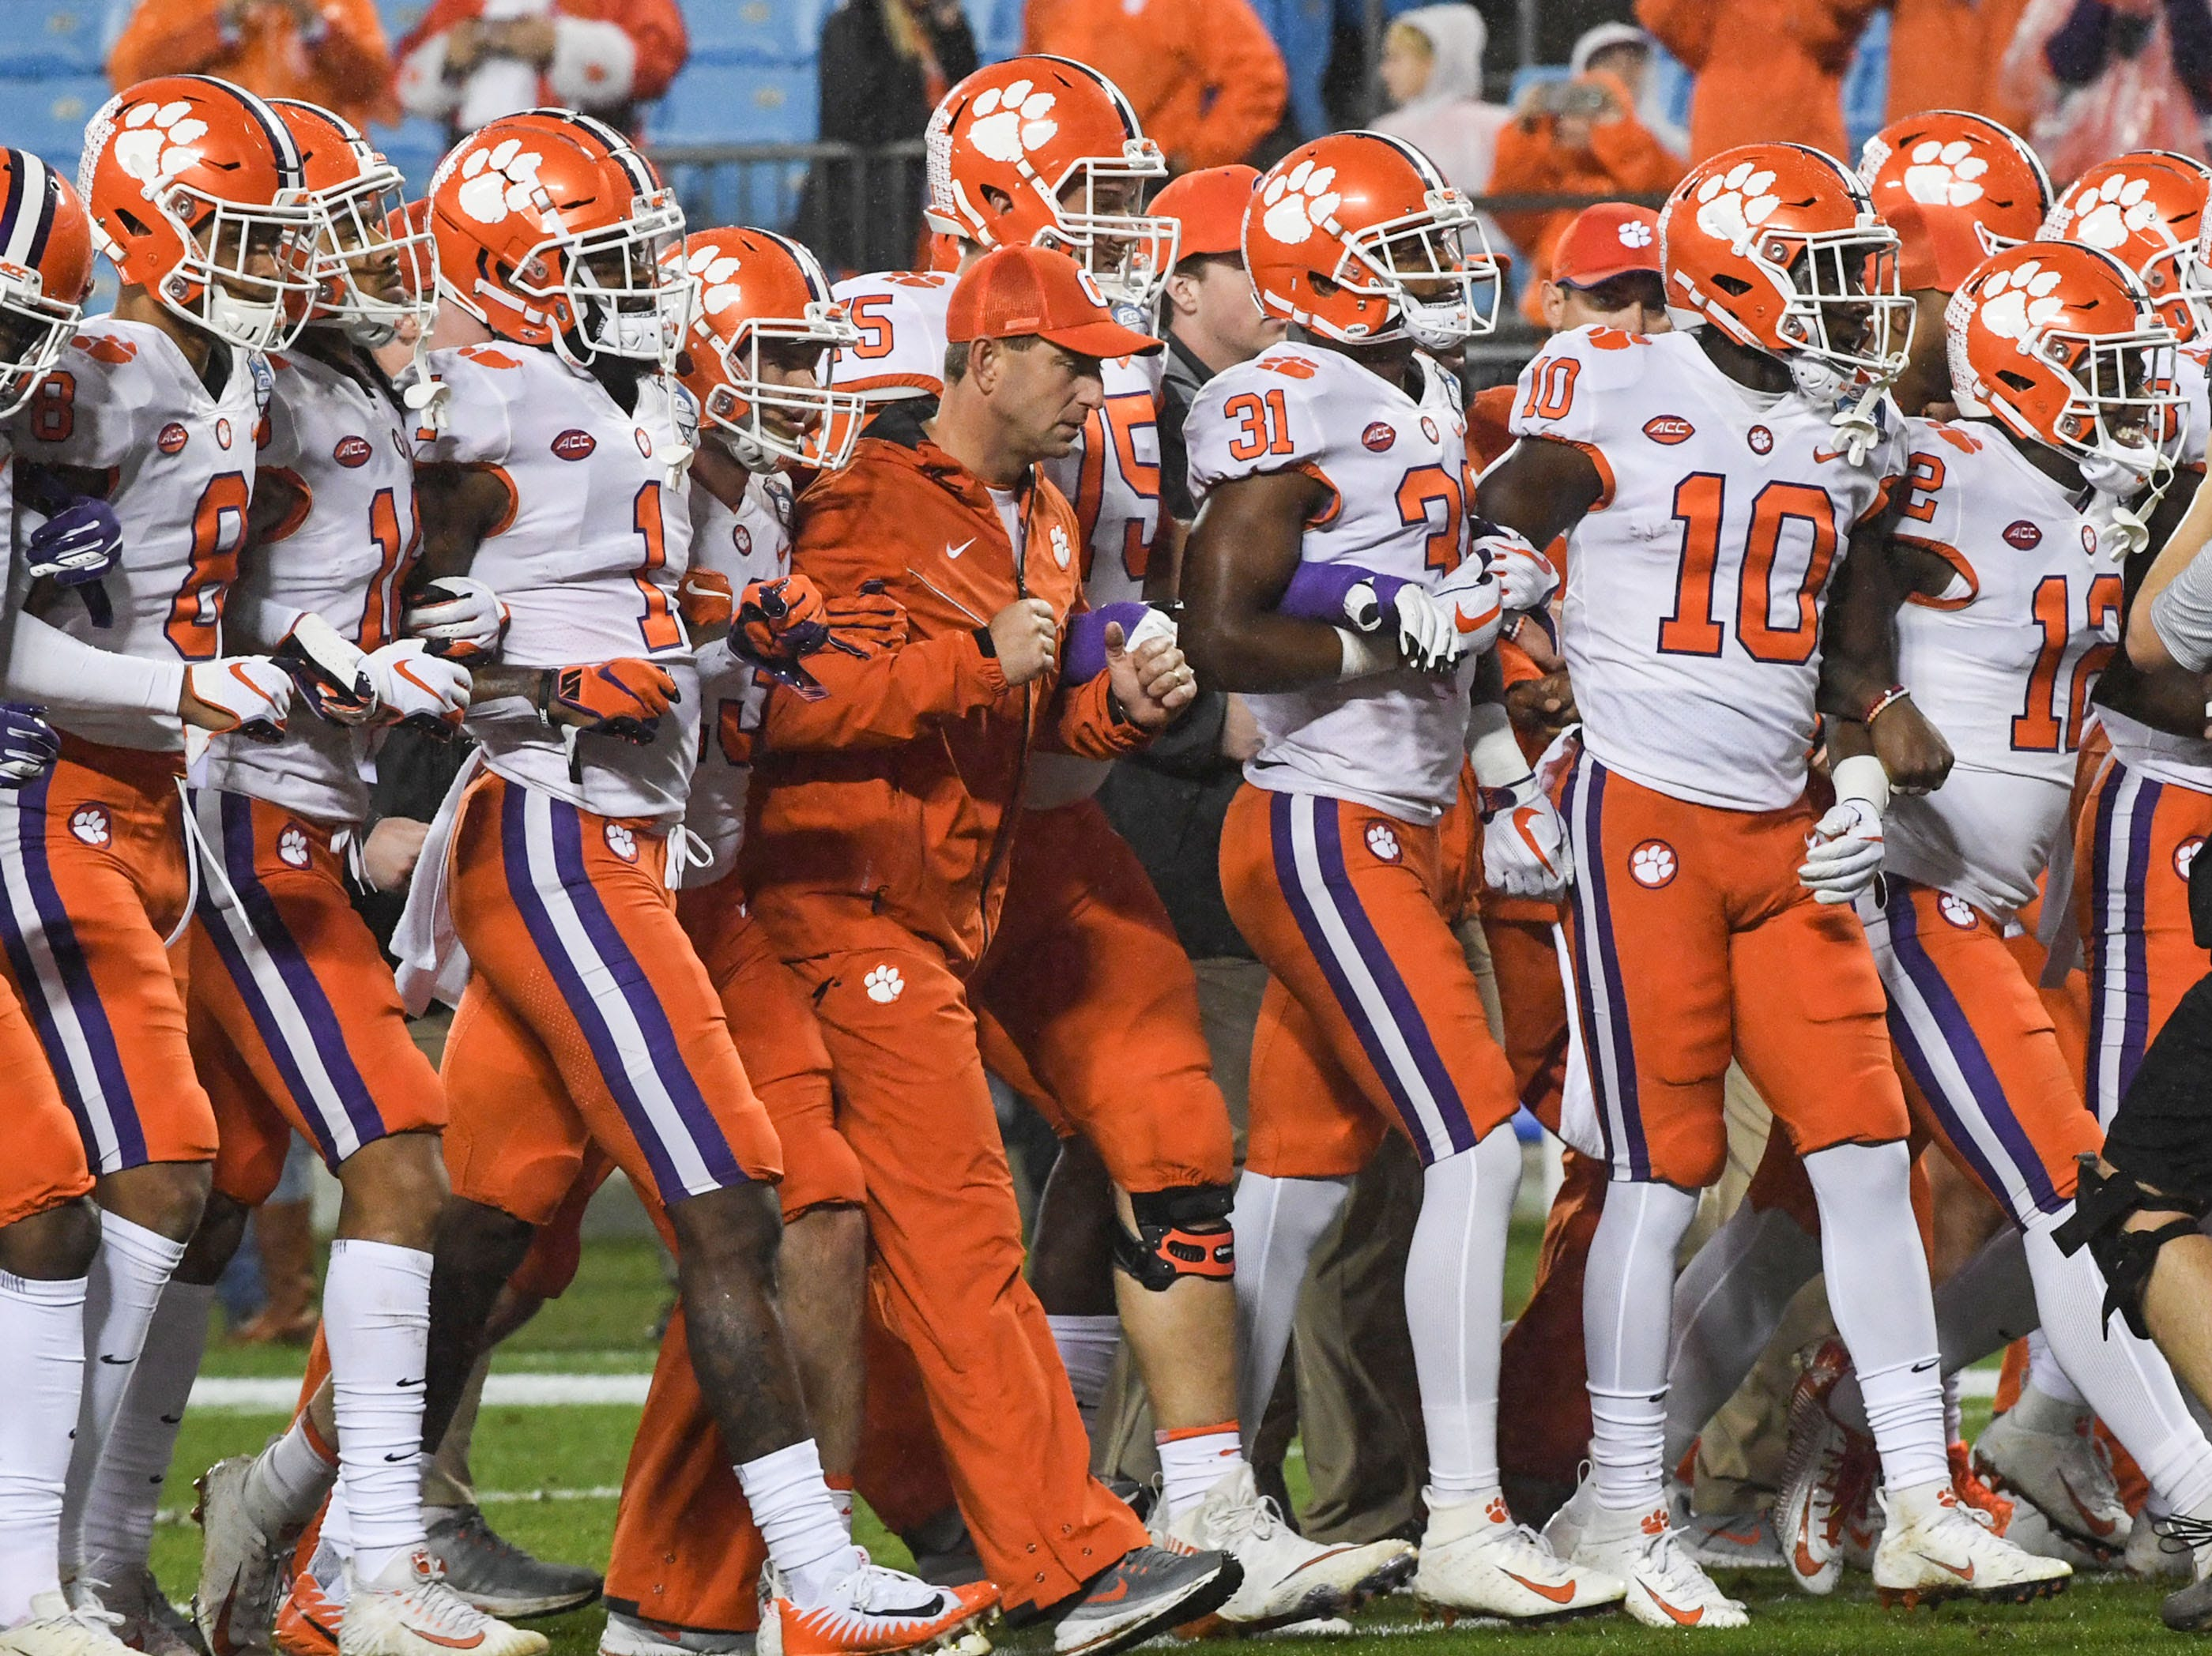 Clemson Head Coach Dabo Swinney walks with players before the game of the Dr. Pepper ACC football championship at Bank of America Stadium in Charlotte, N.C. on Saturday, December 1, 2018.